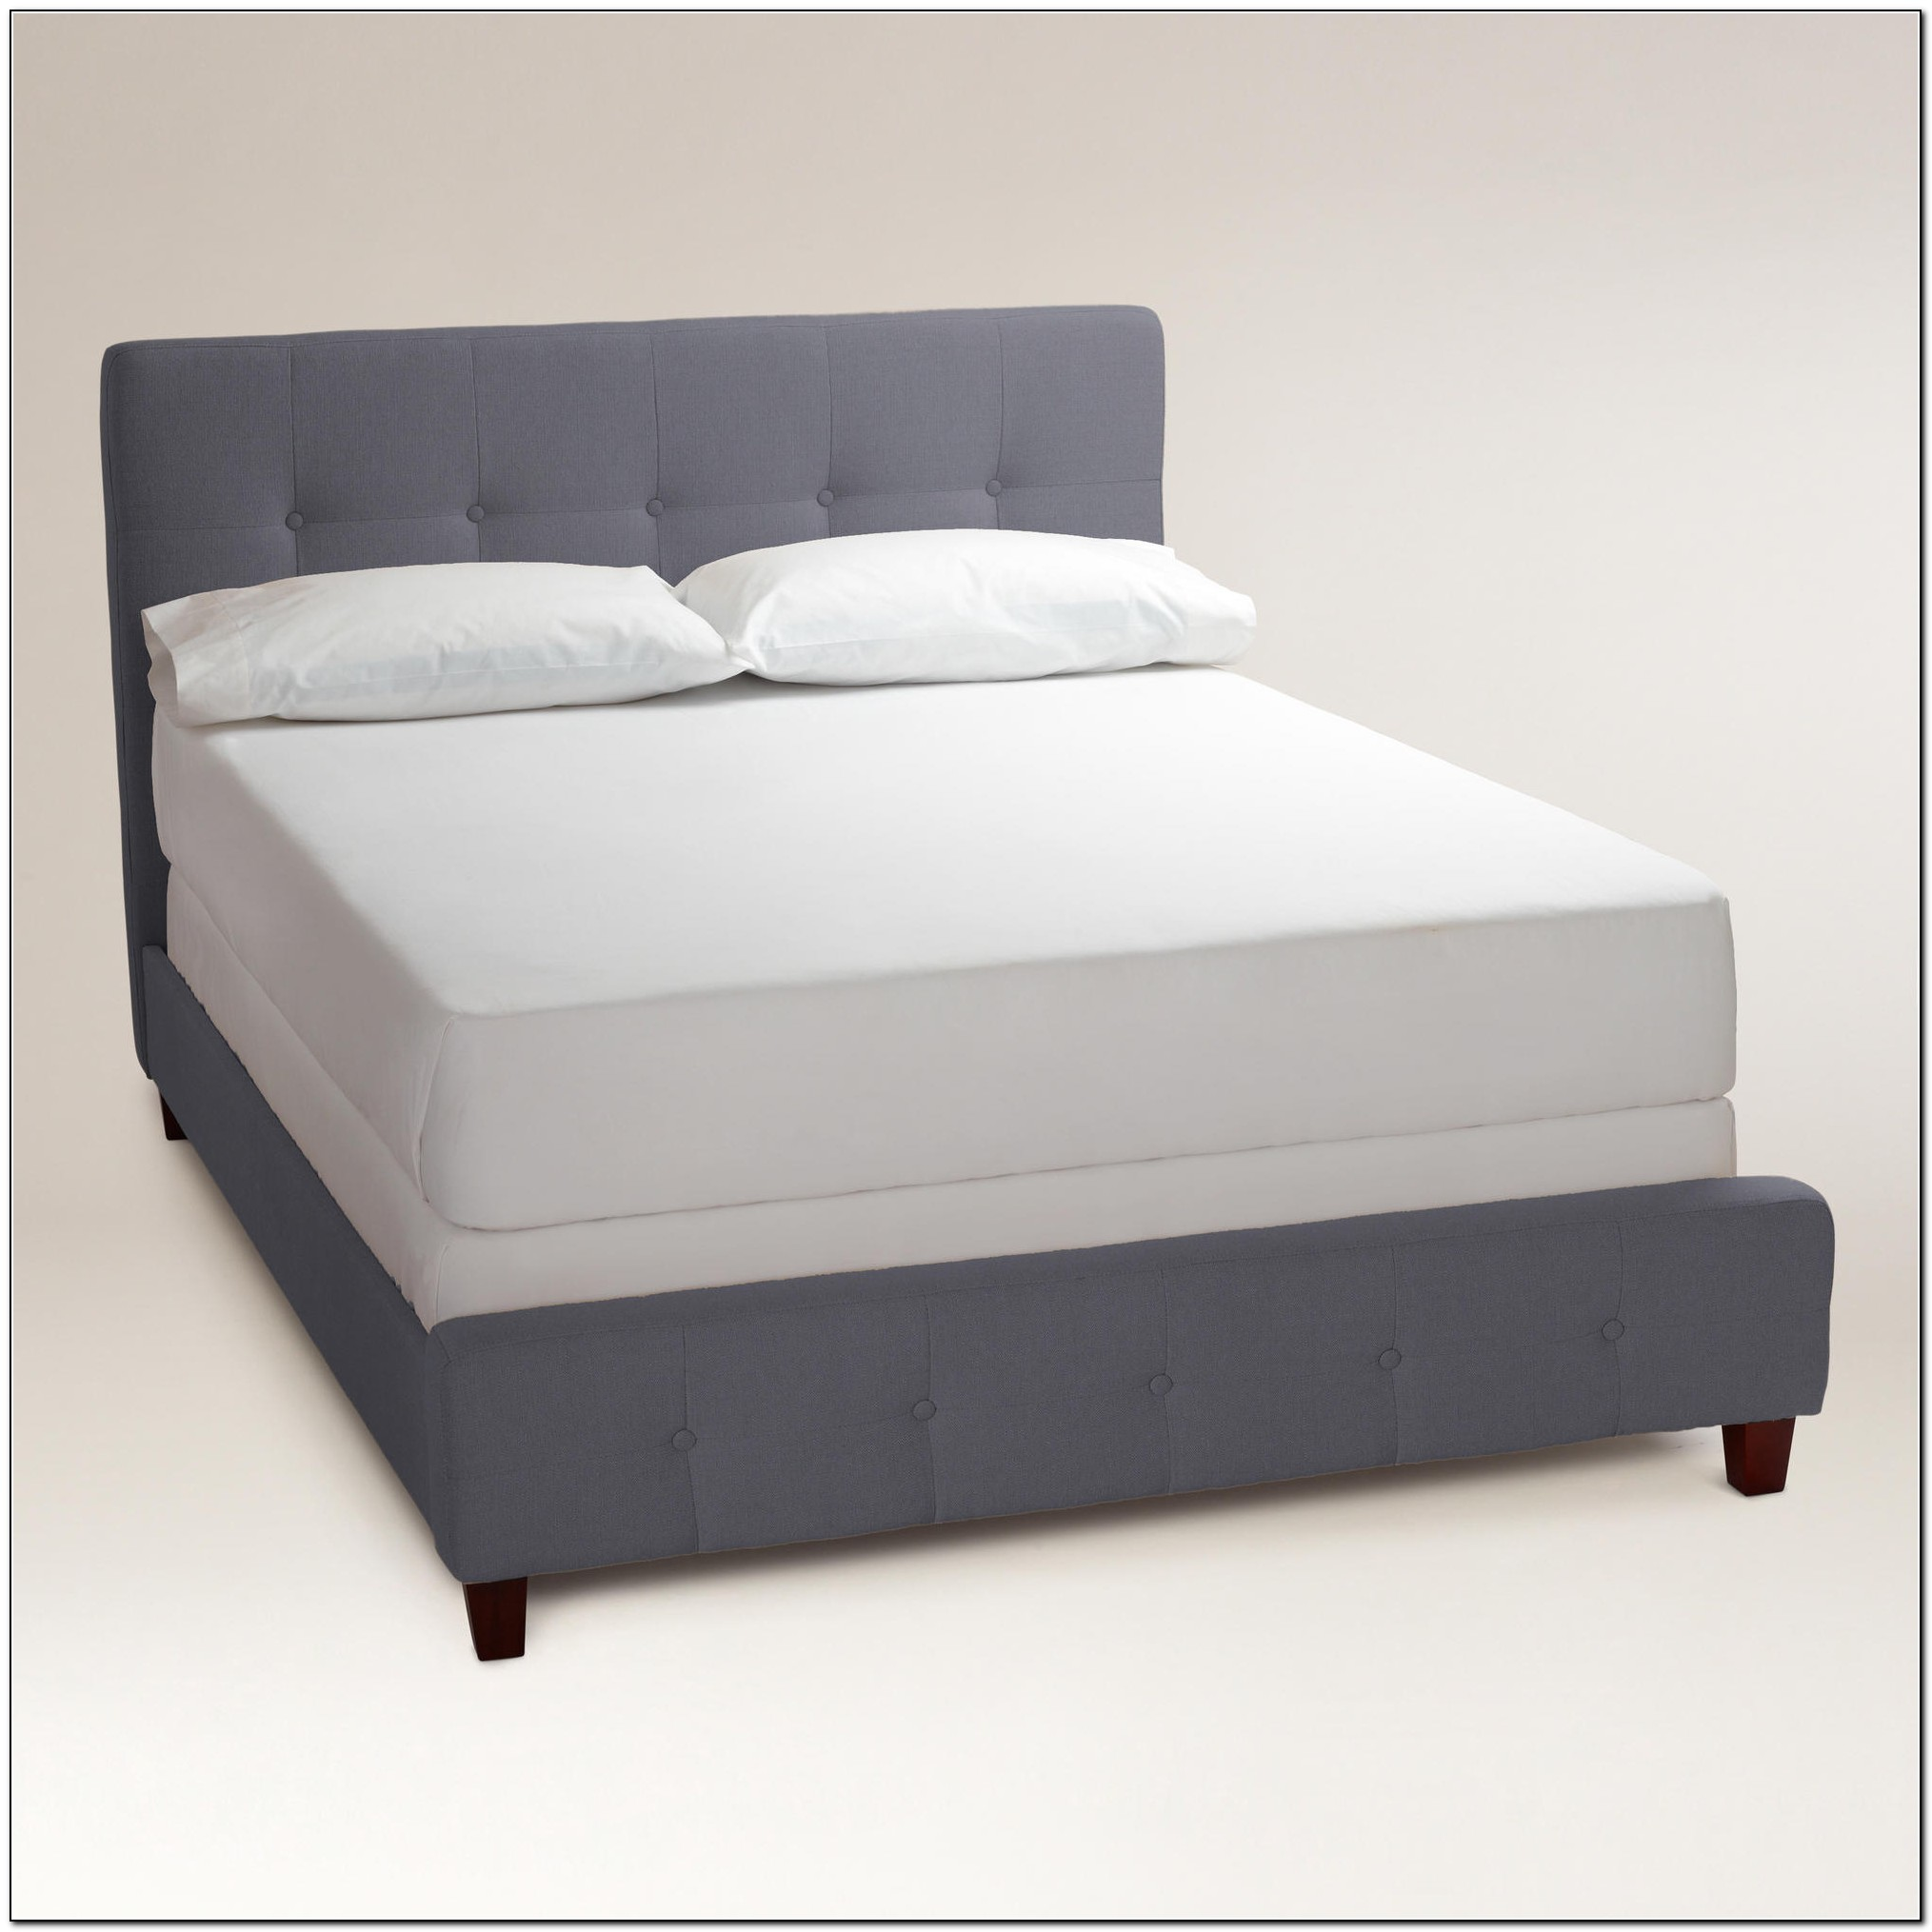 Grey Upholstered Bed Frame